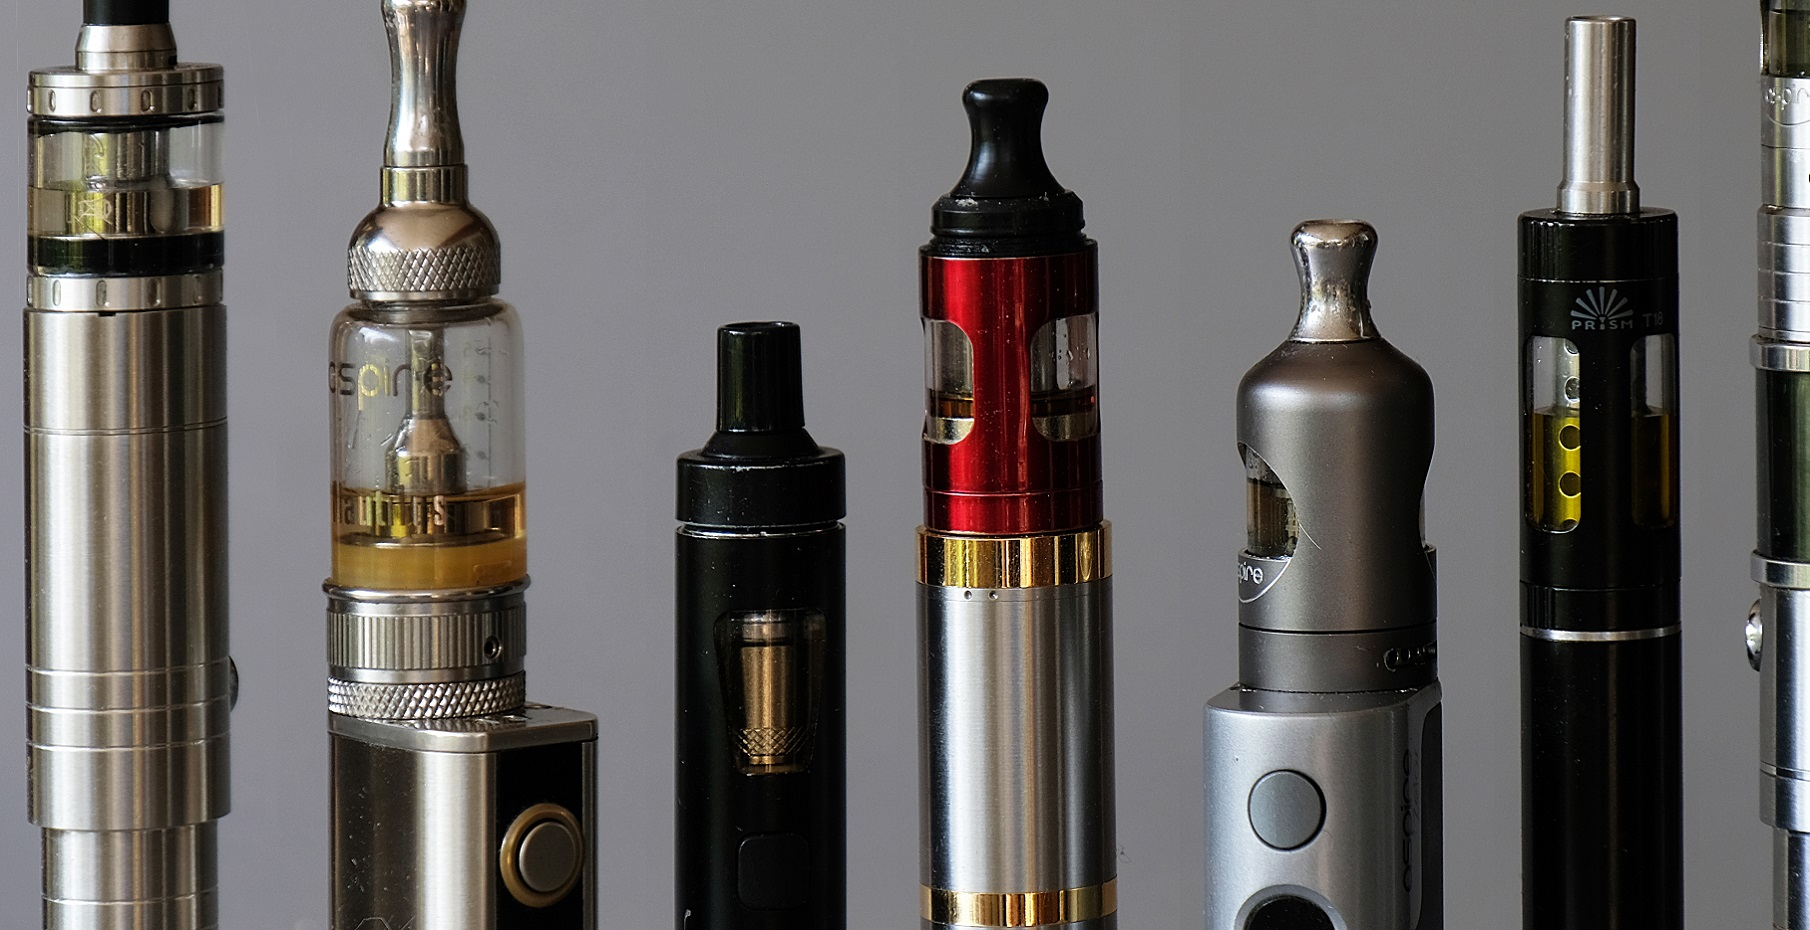 Injuries from e-cigarette explosion, fire or related health problems have skyrocketed with the growing rates of use. Make sure you are keeping yourself safe and are aware of the dangers smoking them exposes you to.